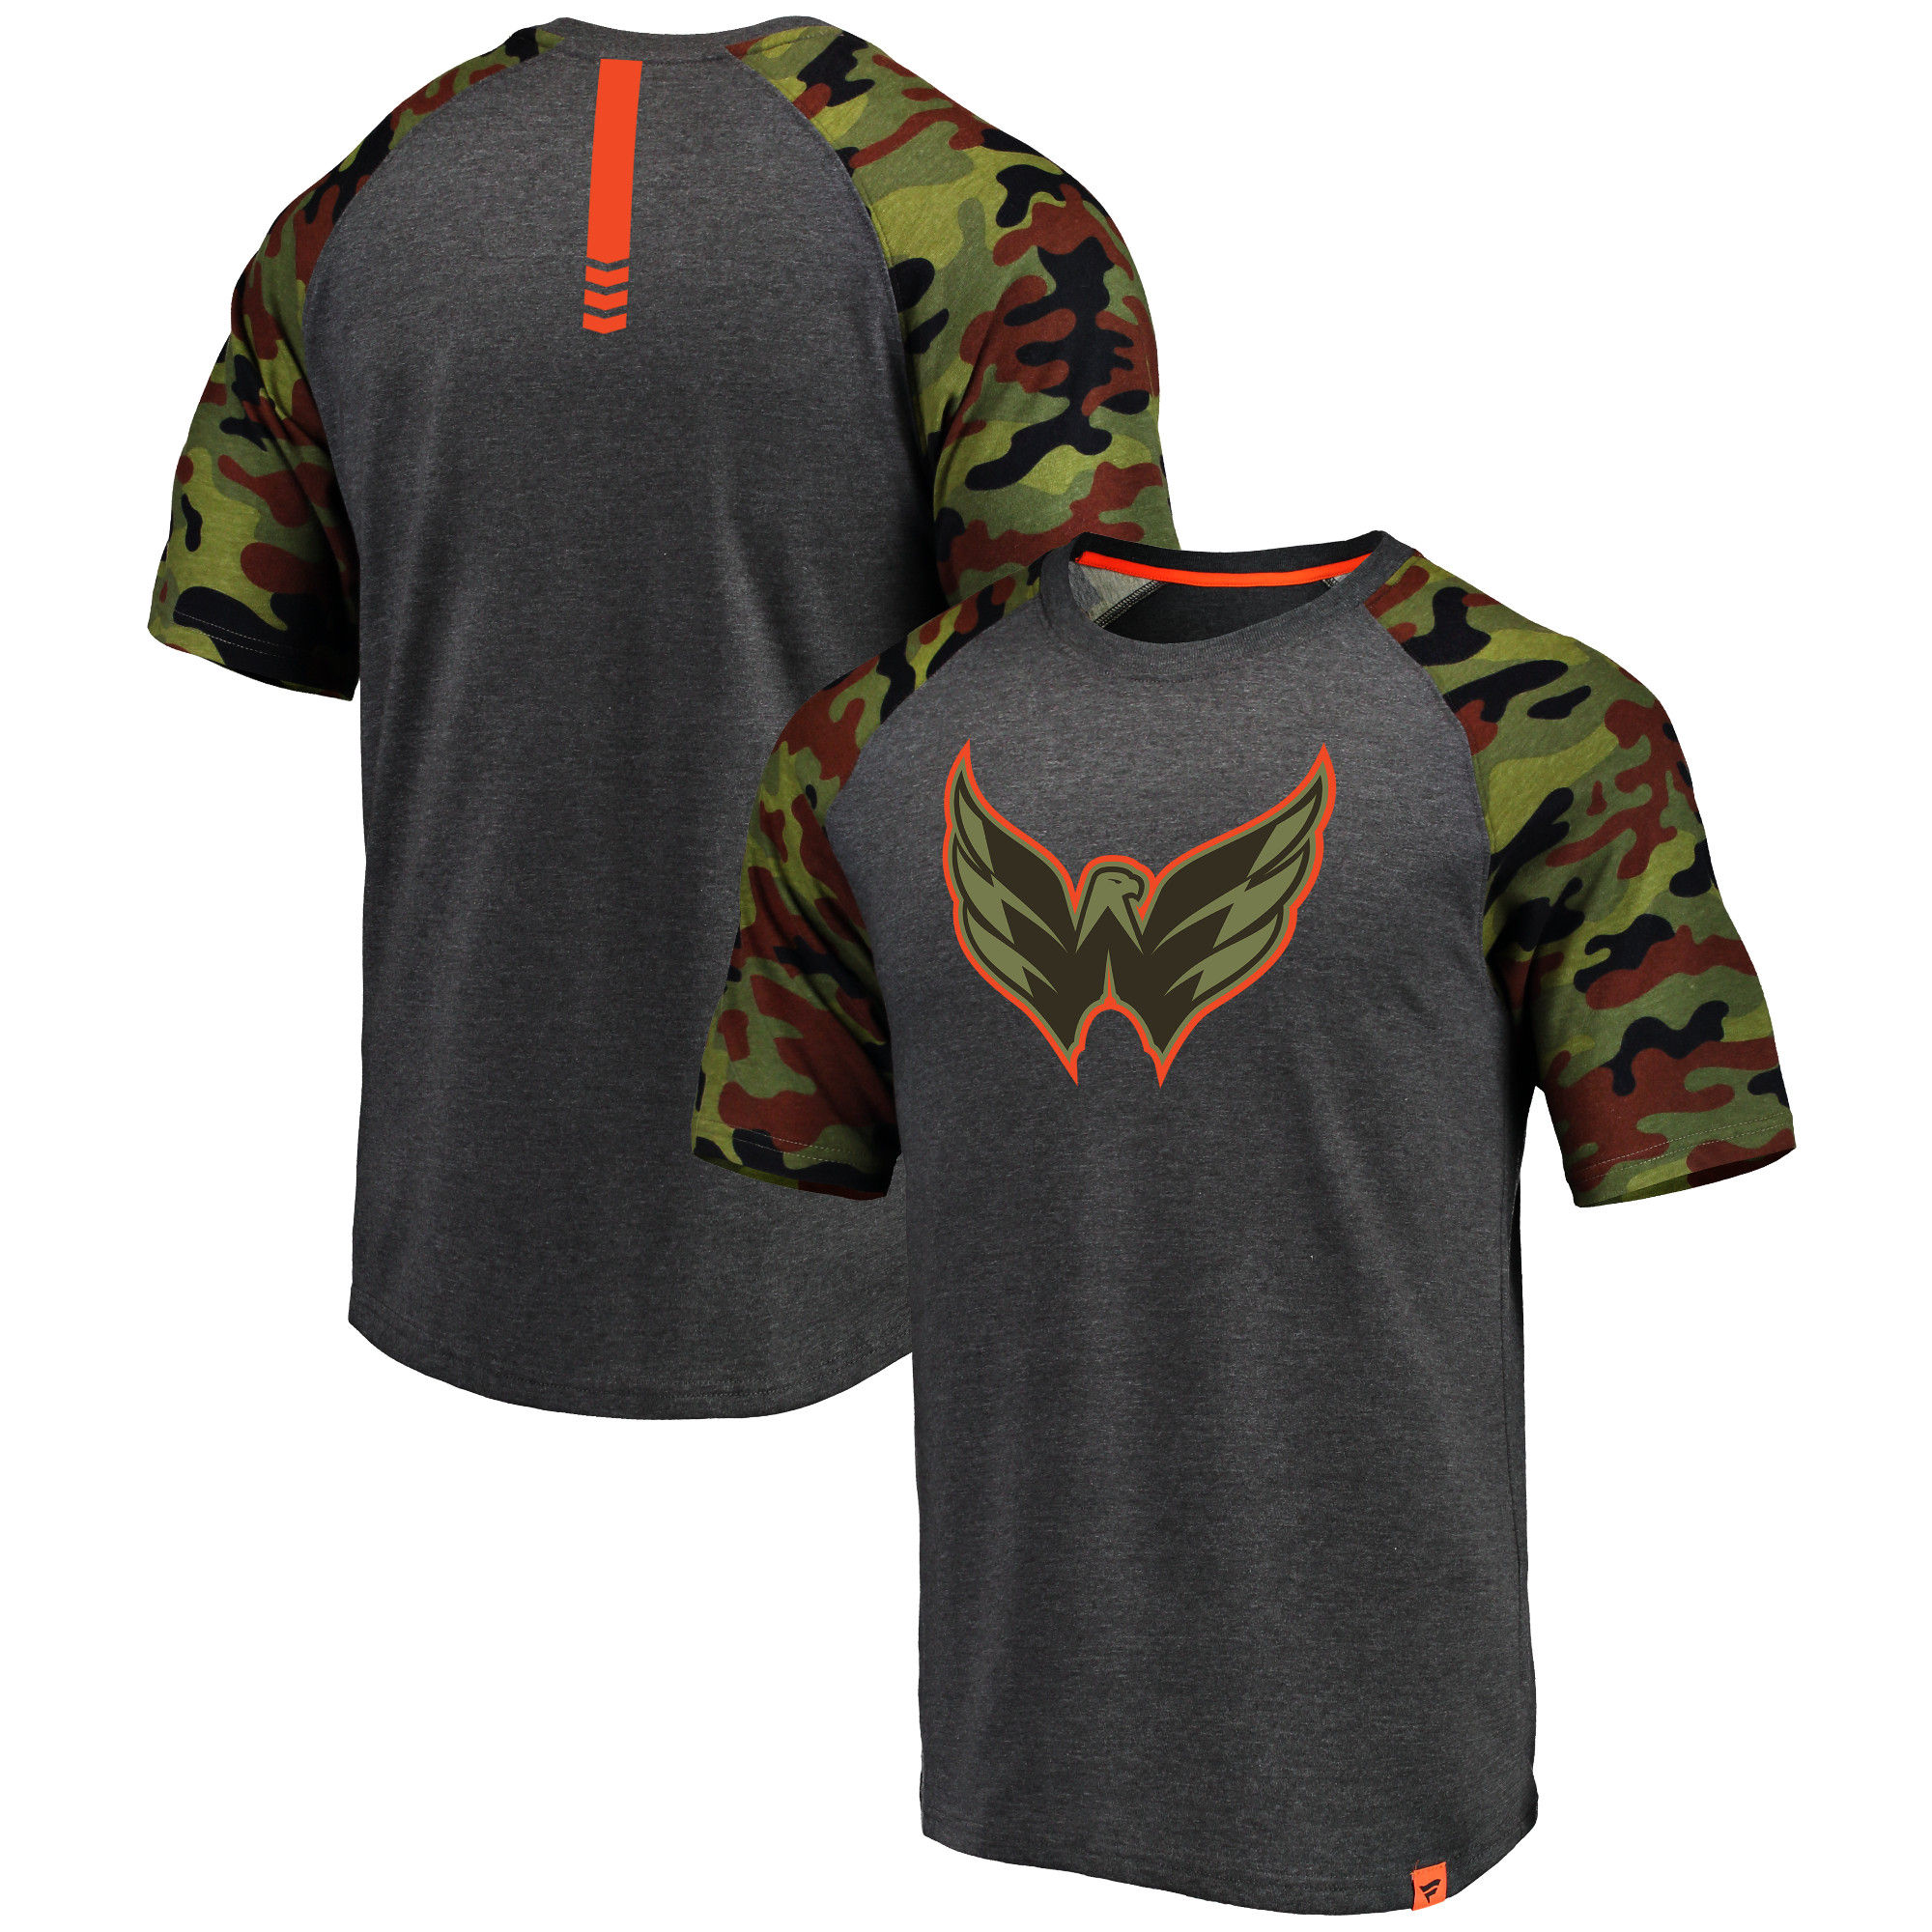 Washington Capitals Fanatics Branded Heathered Gray/Camo Recon Camo Raglan T-Shirt